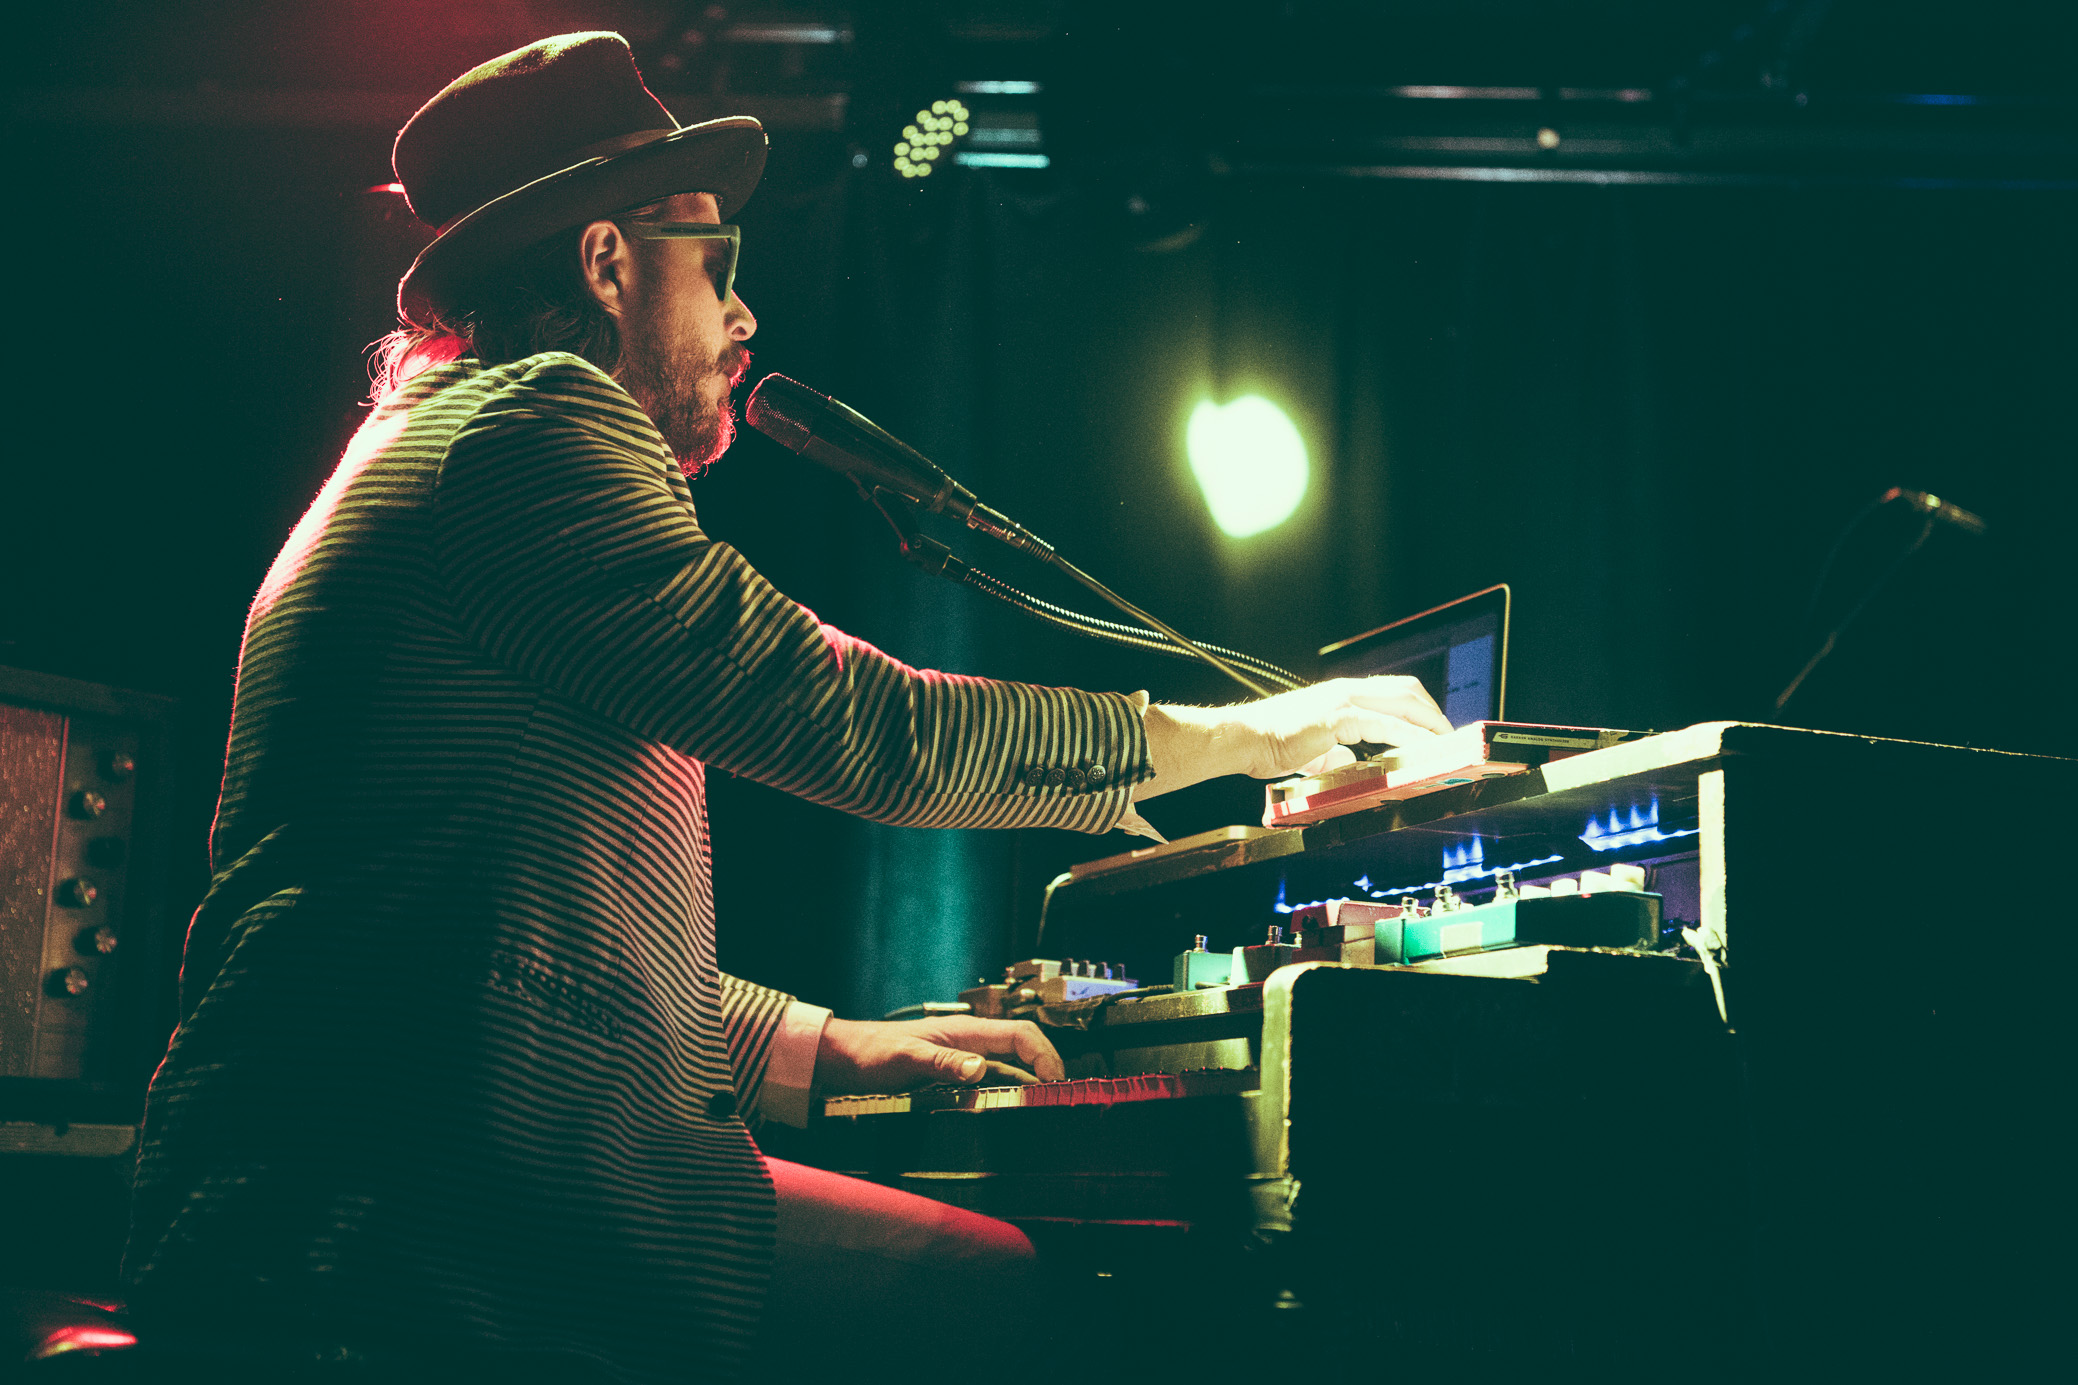 Marco Benevento performs in concert at Saturn Birmingham in Birmingham, Alabama on February 9th, 2018. (Photo by David A. Smith/DSmithScenes)